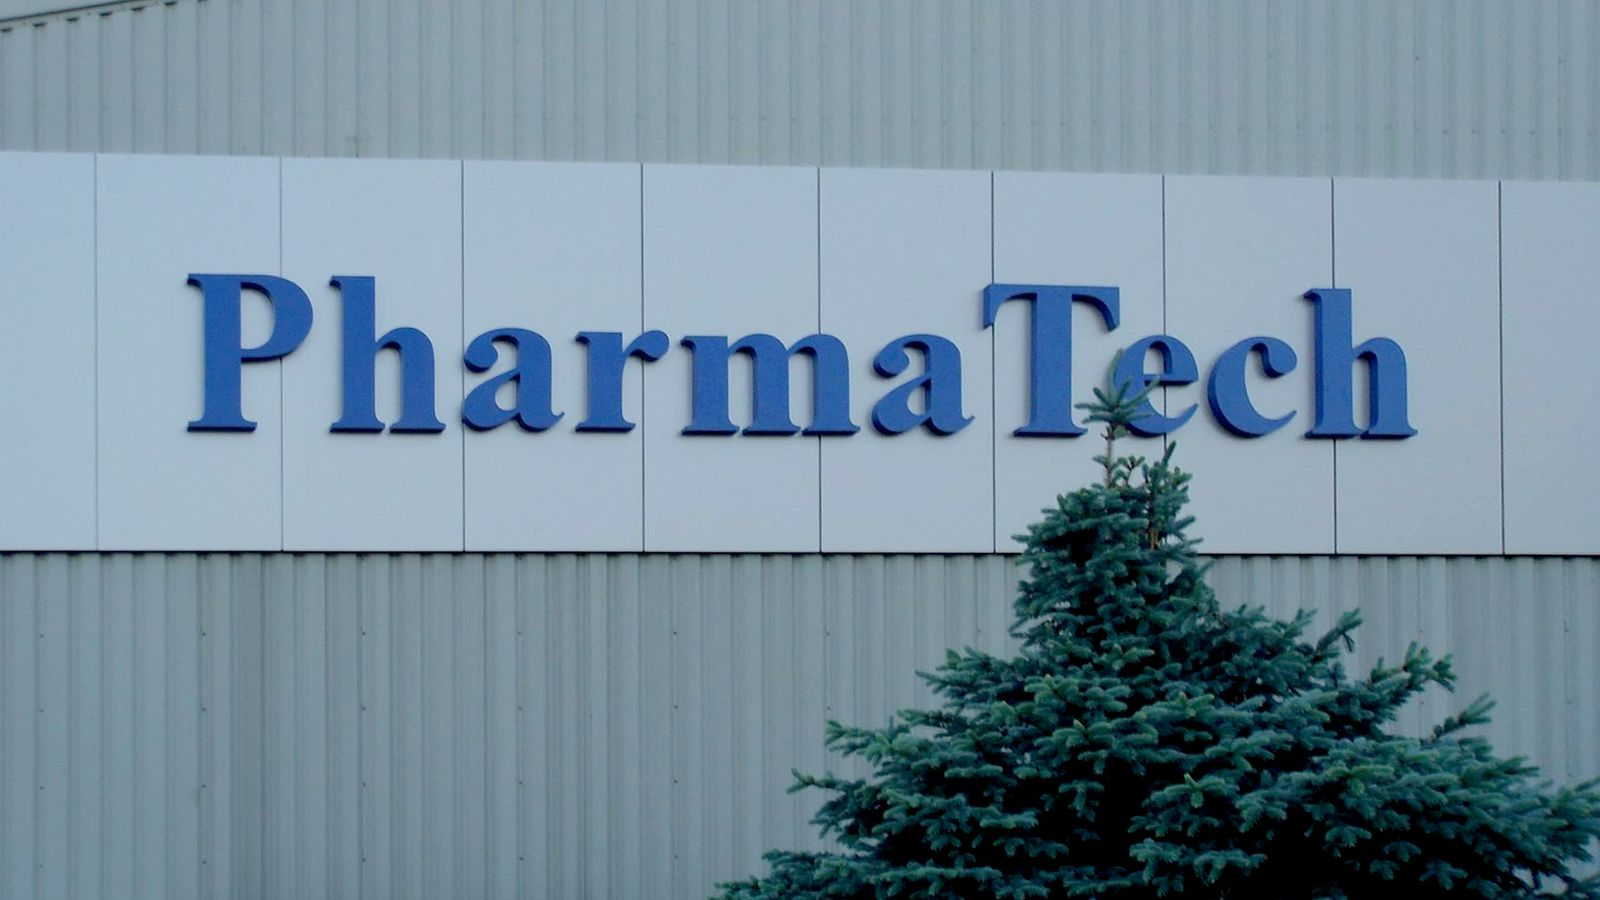 Pharma Tech 3d sign in a huge size displaying the brand name made of aluminum and acrylic for corporate branding outdoors